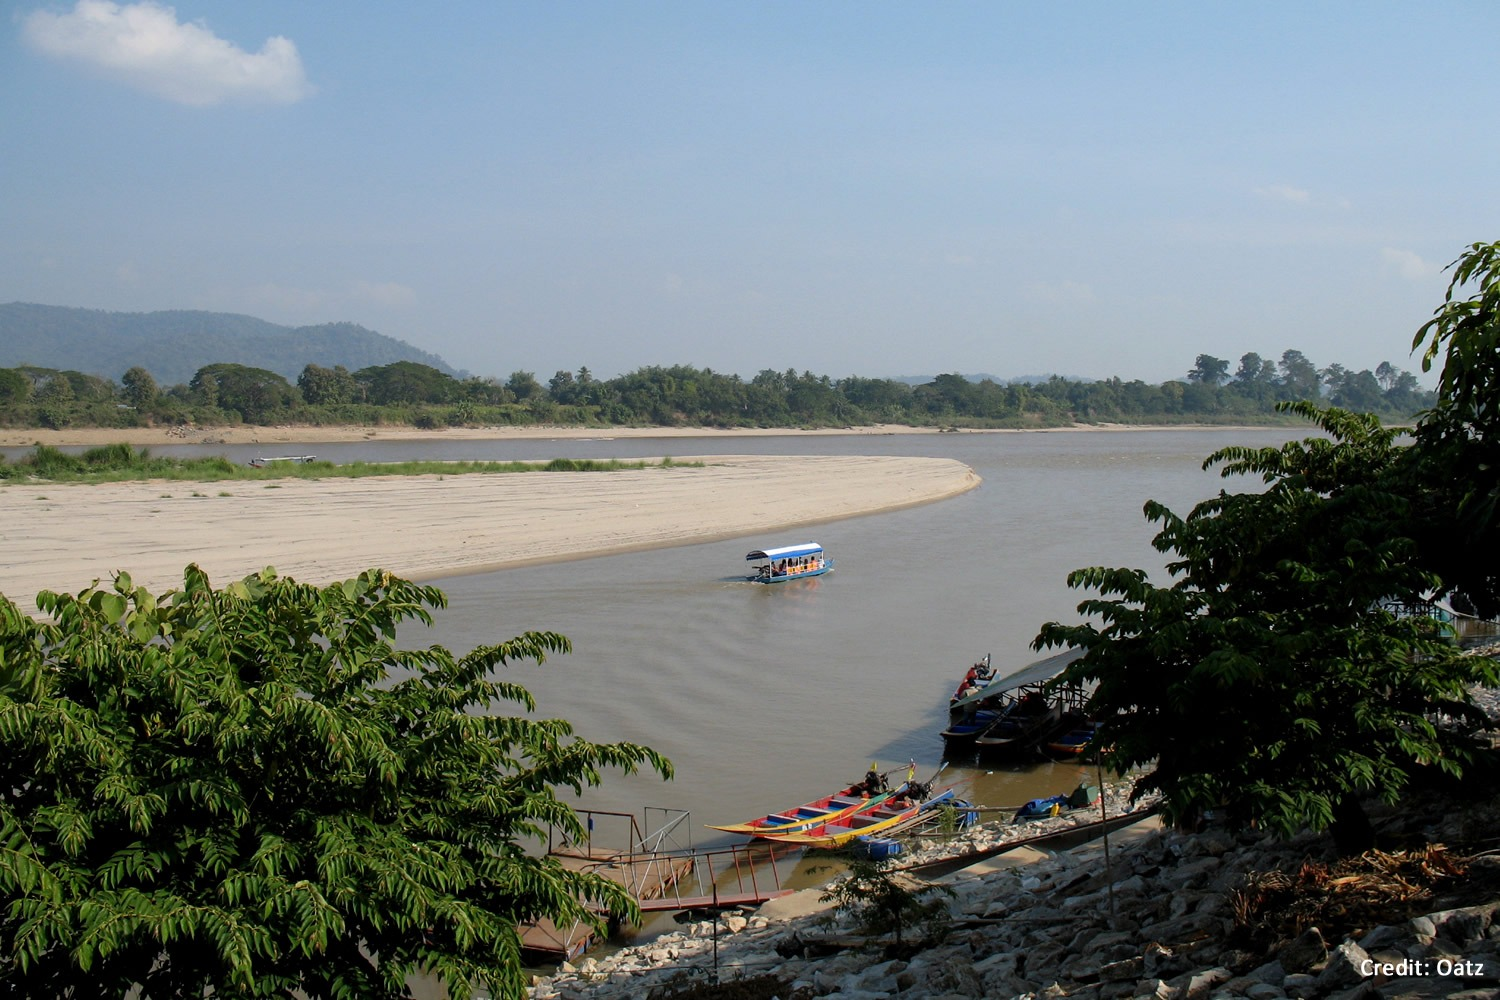 Golden Triangle at Amphoe, Chiang Saen